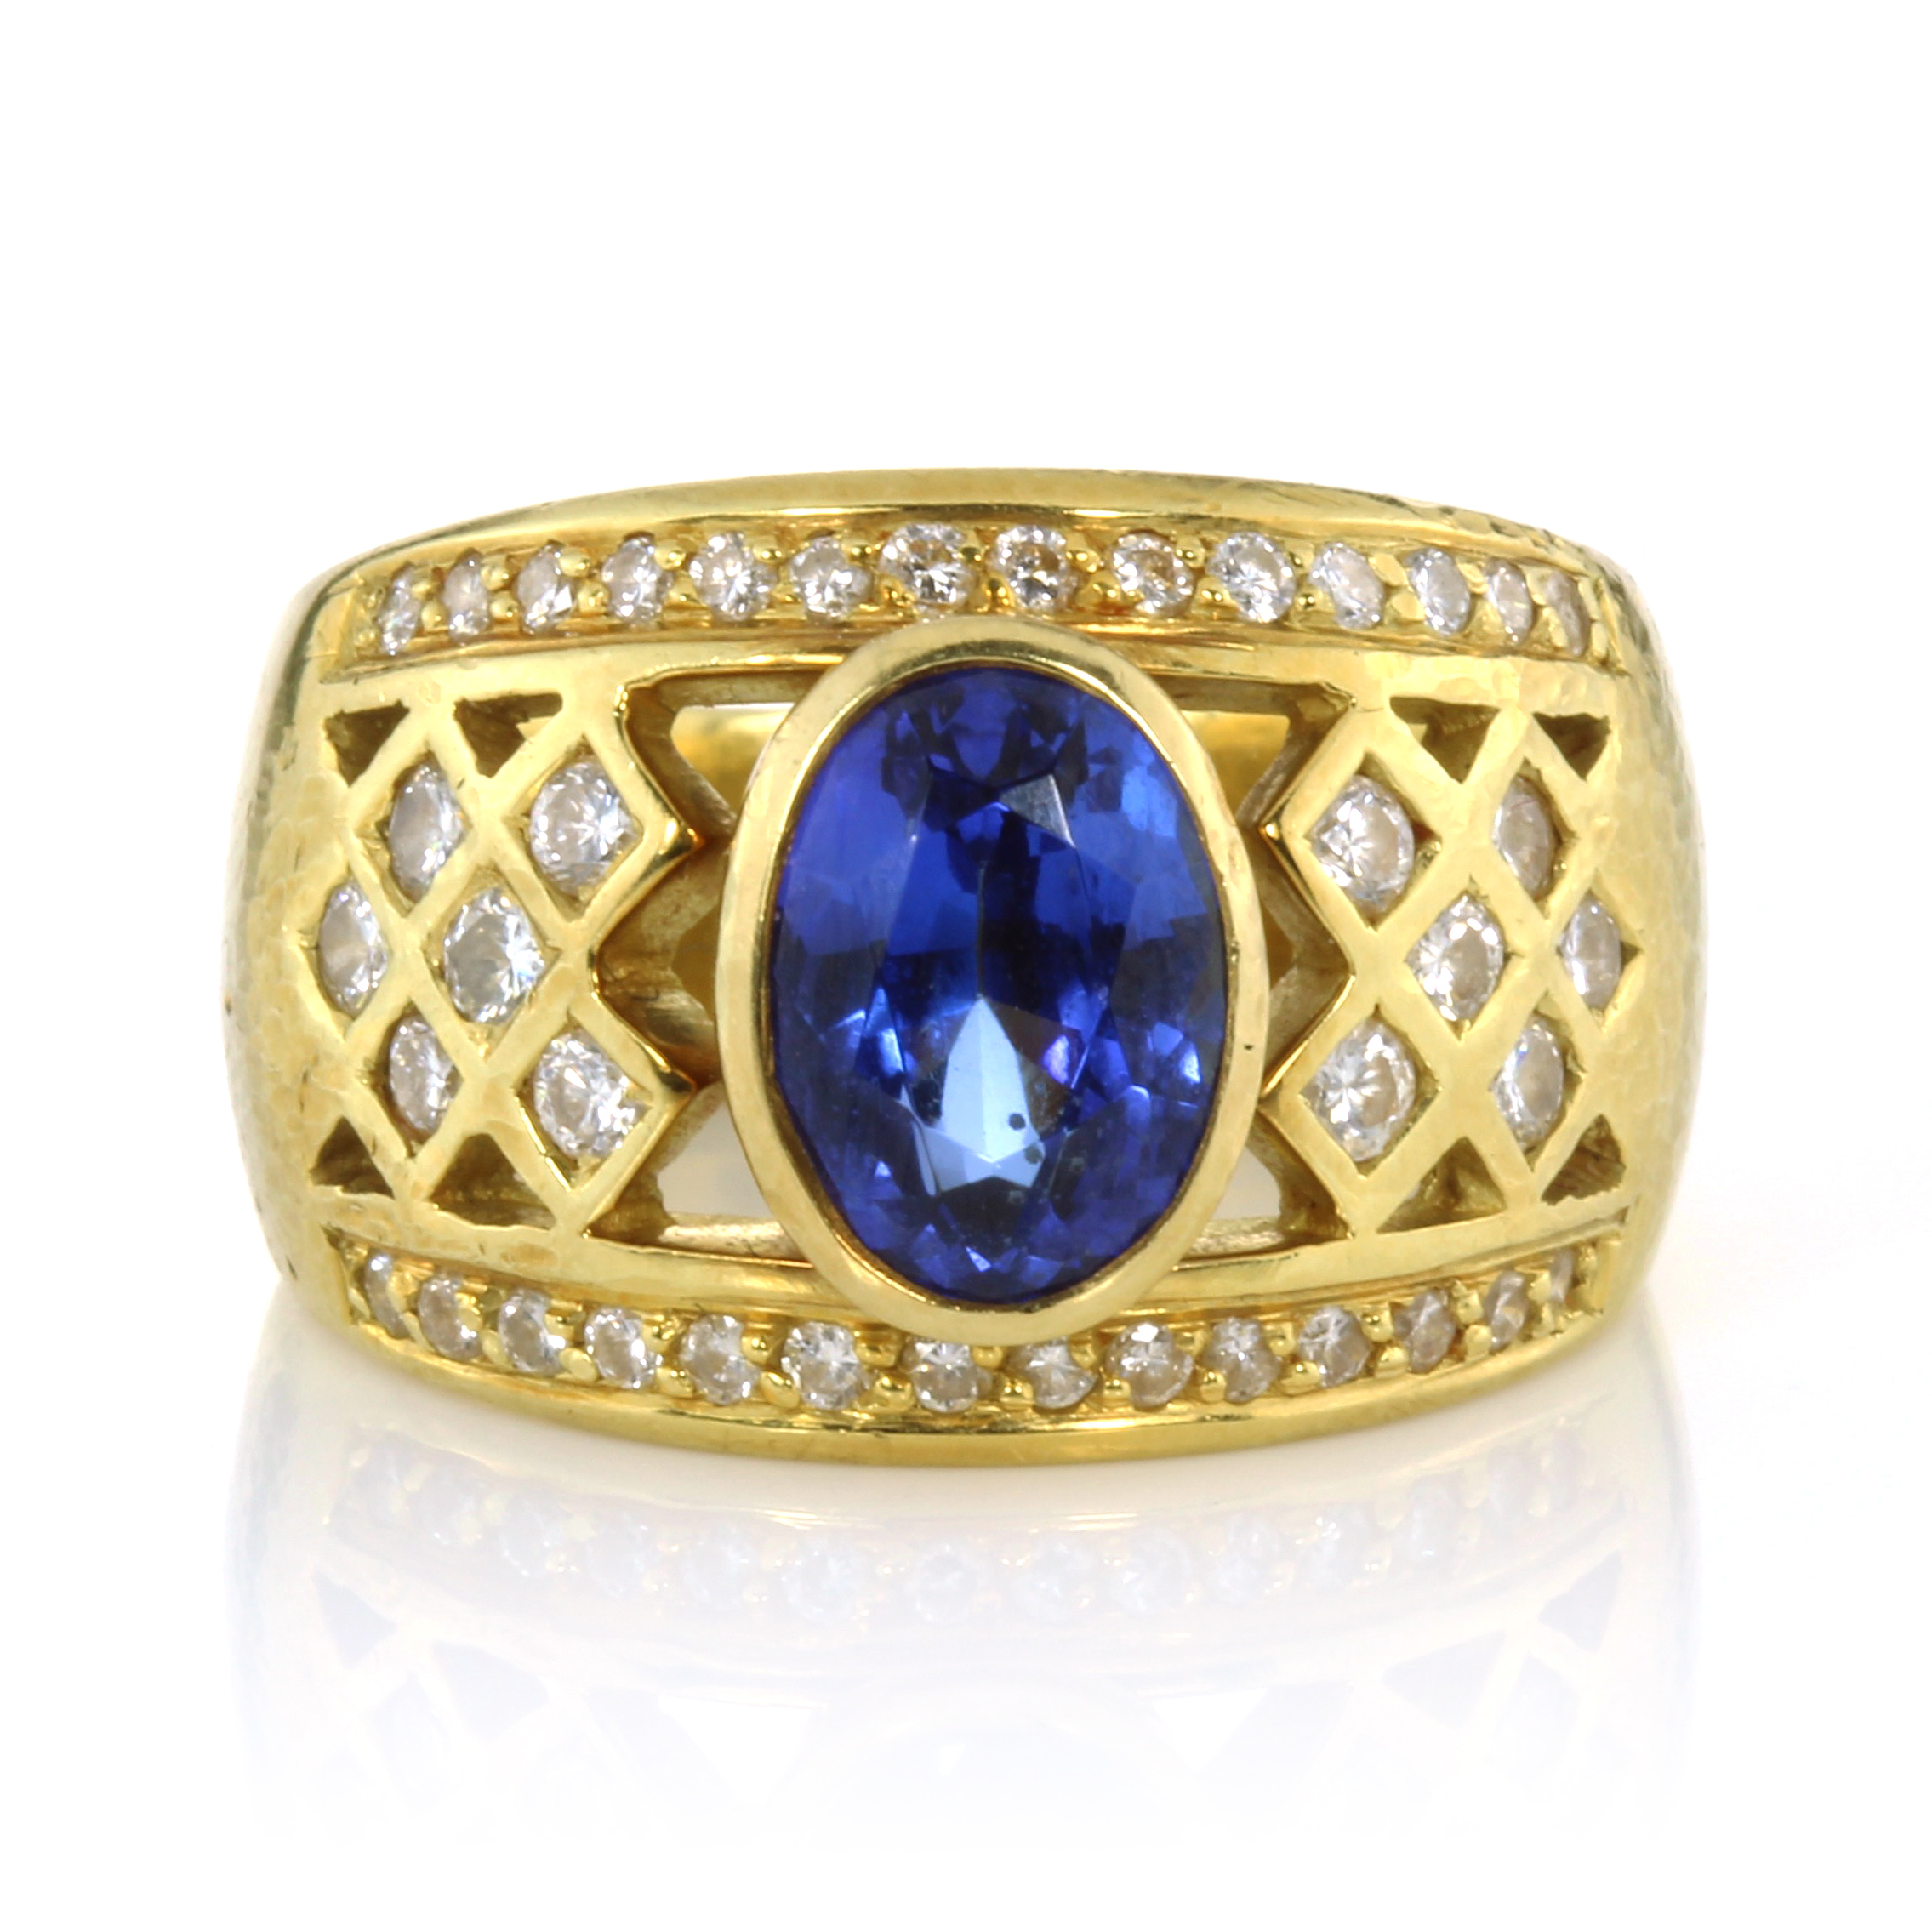 Los 41 - A TANZANITE DRESS RING set with an oval cut tanzanite of 2.61 carats with a jewelled diamond